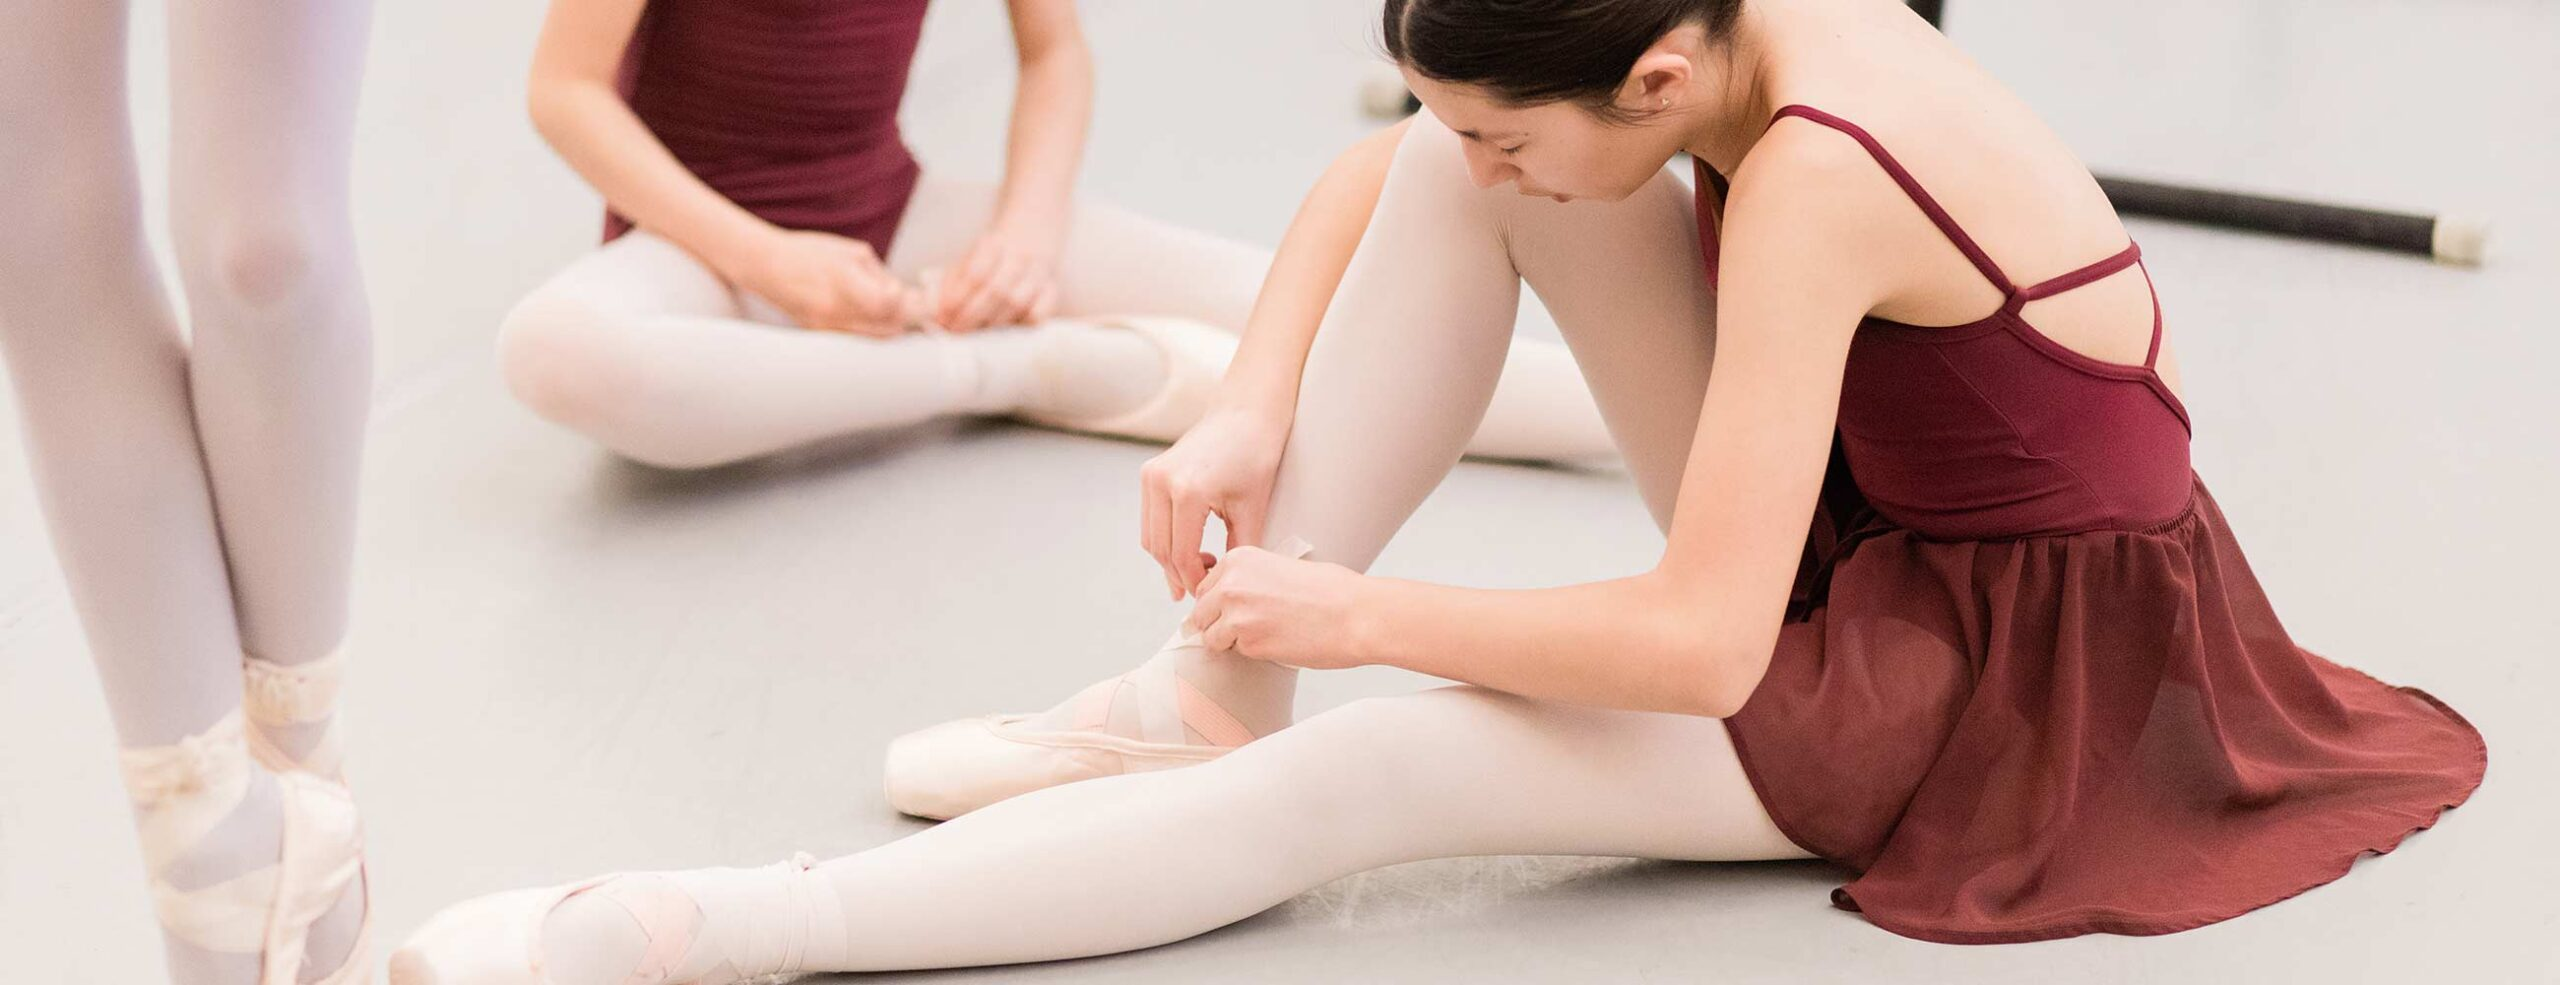 Student on floor tying ballet shoe laces